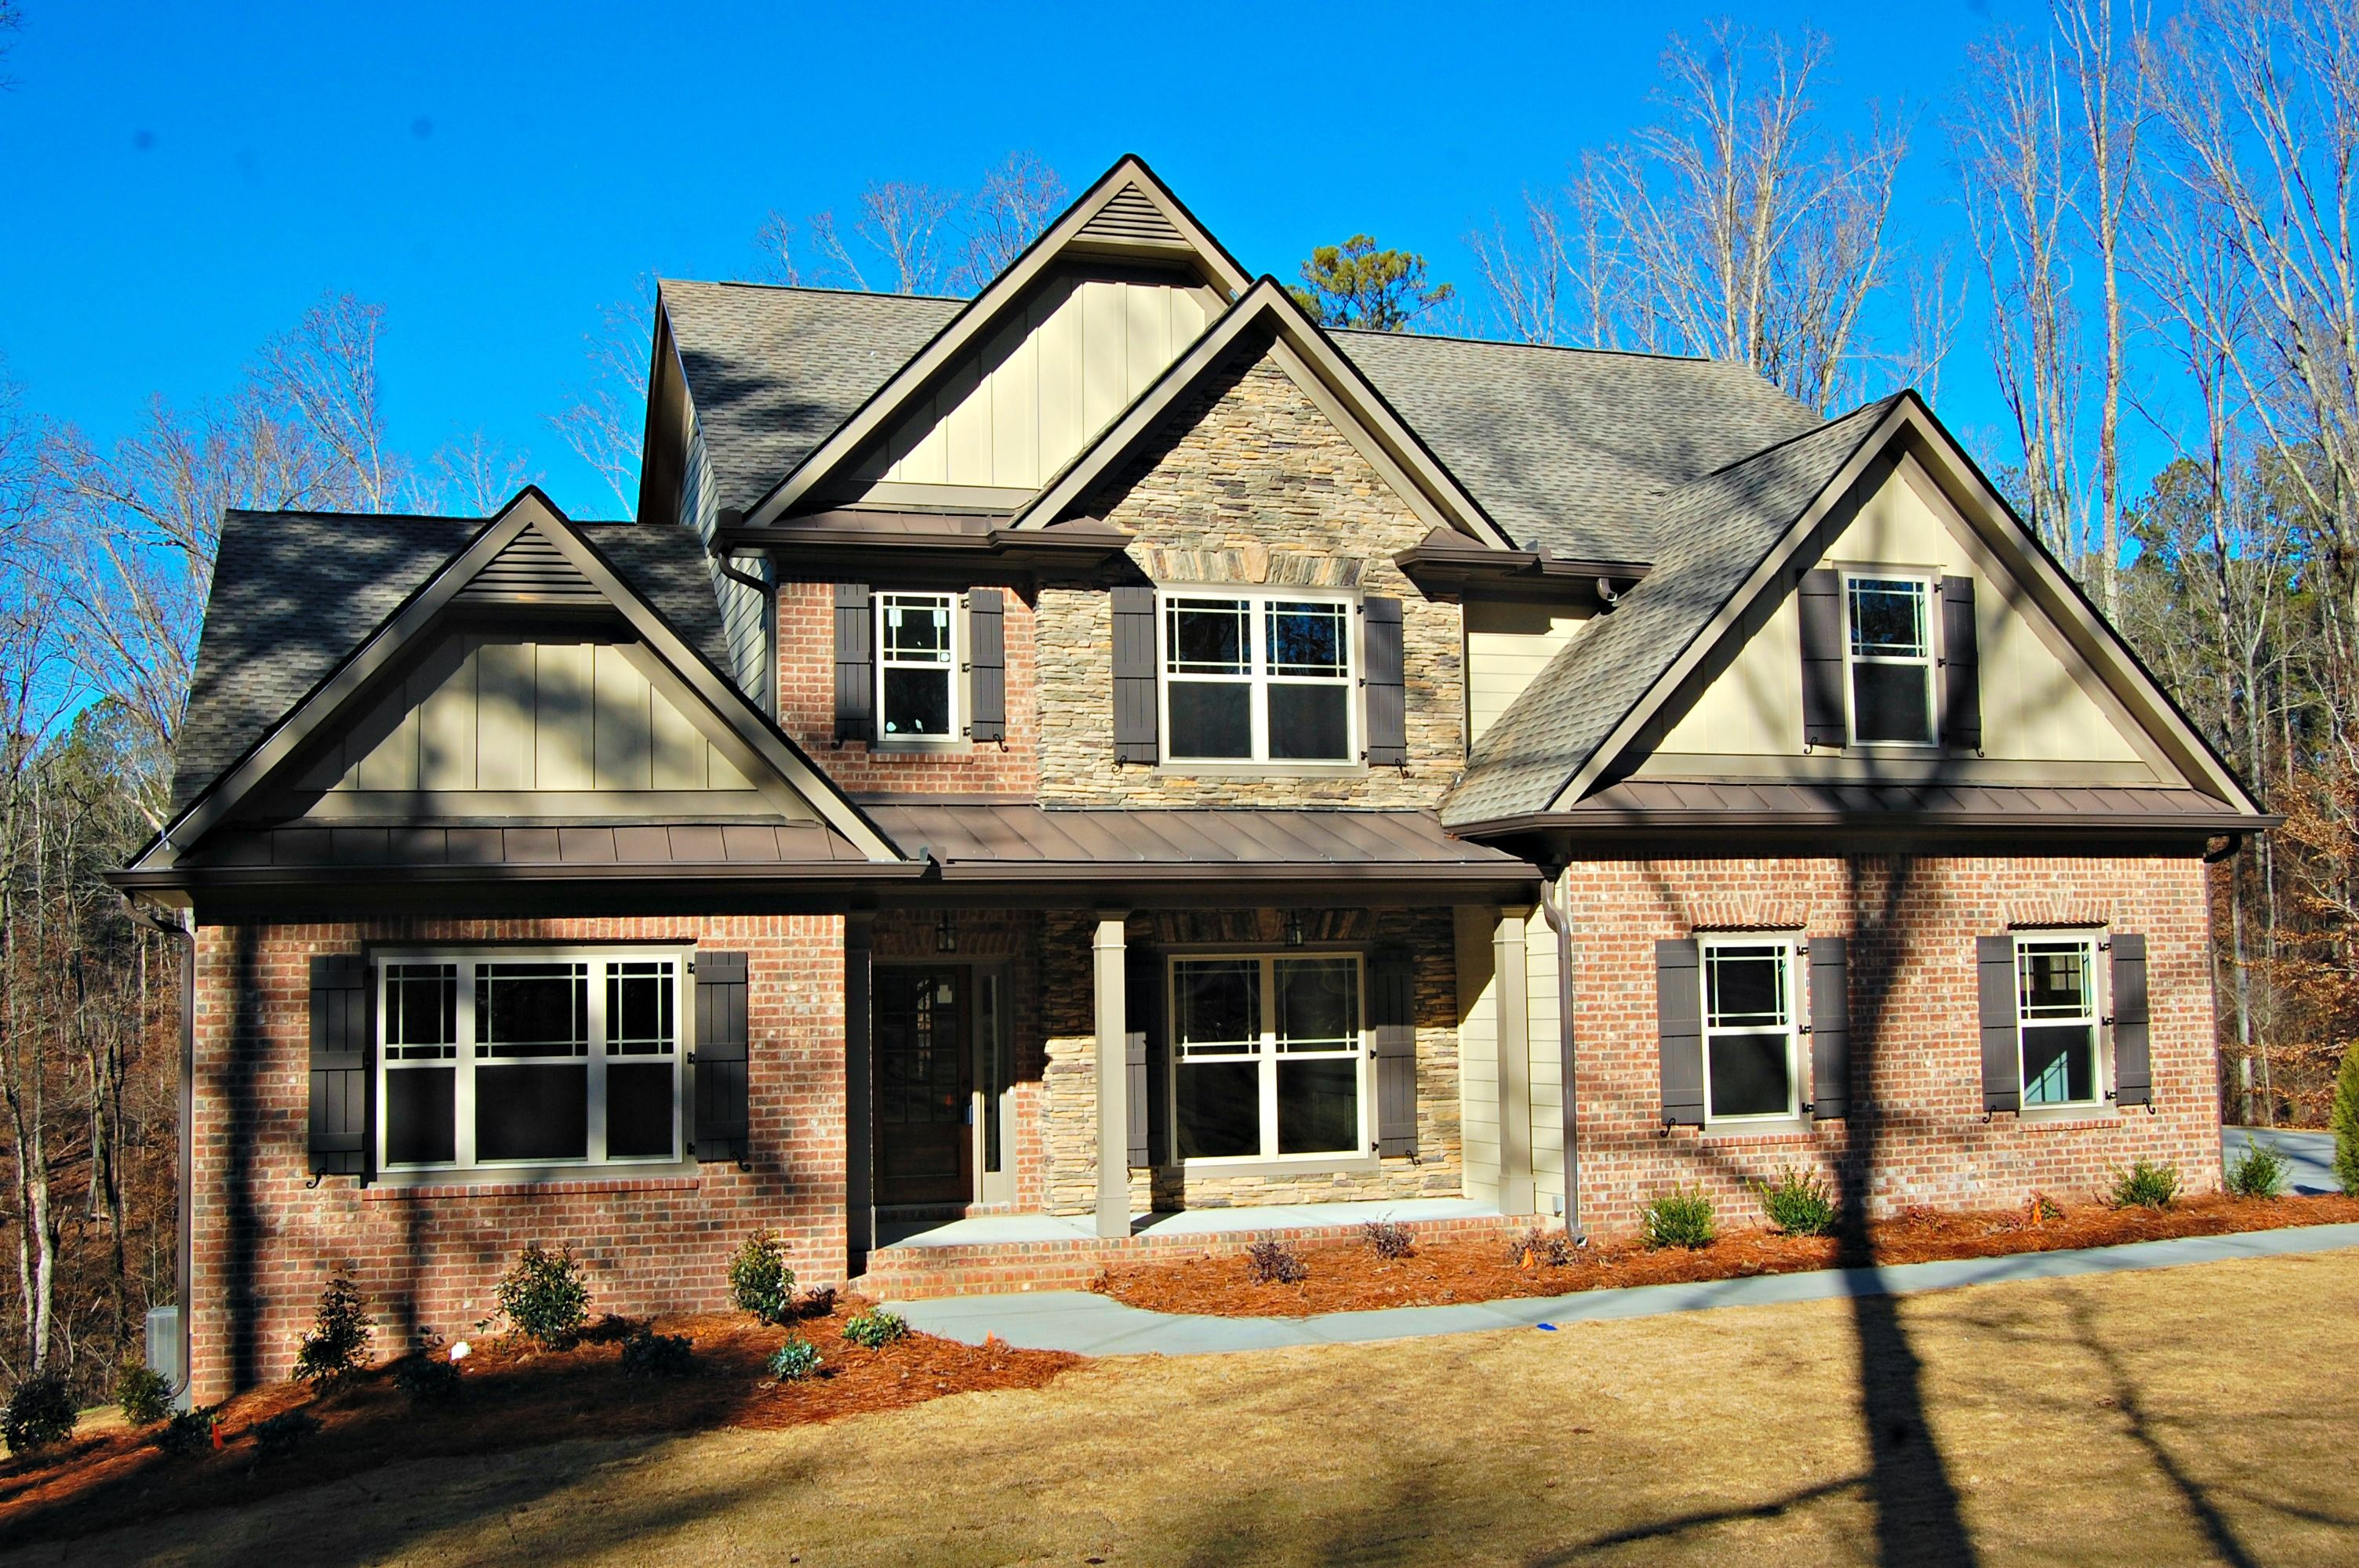 Reliant Home for Sale in Monroe, GA Home for Sale in